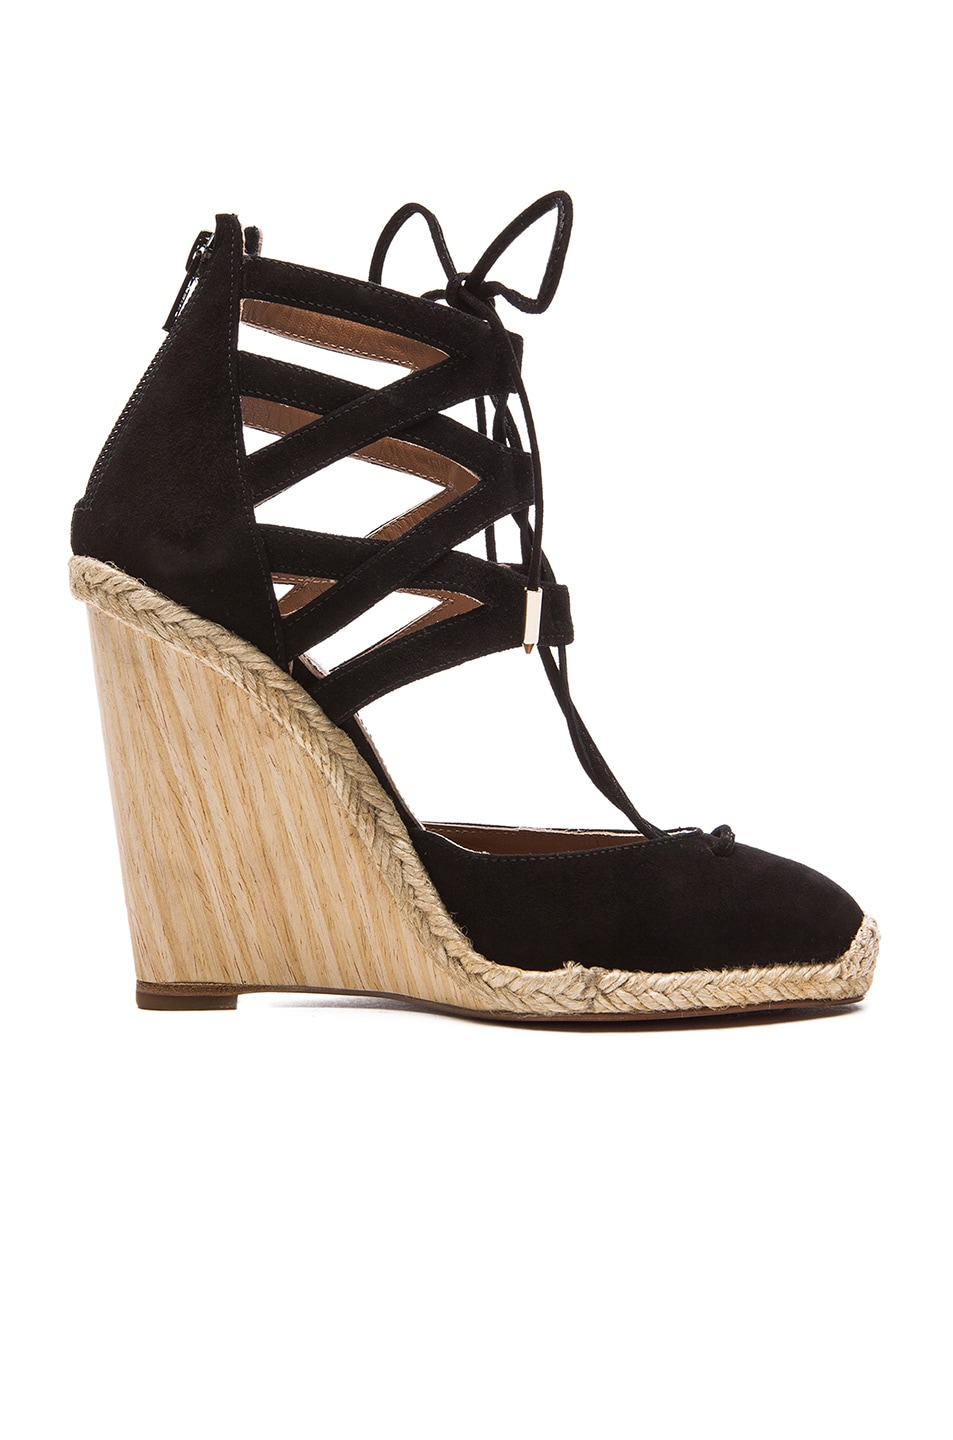 5cb0d0ca49d Image 1 of Aquazzura Belgravia Suede Wedge Espadrilles in Black